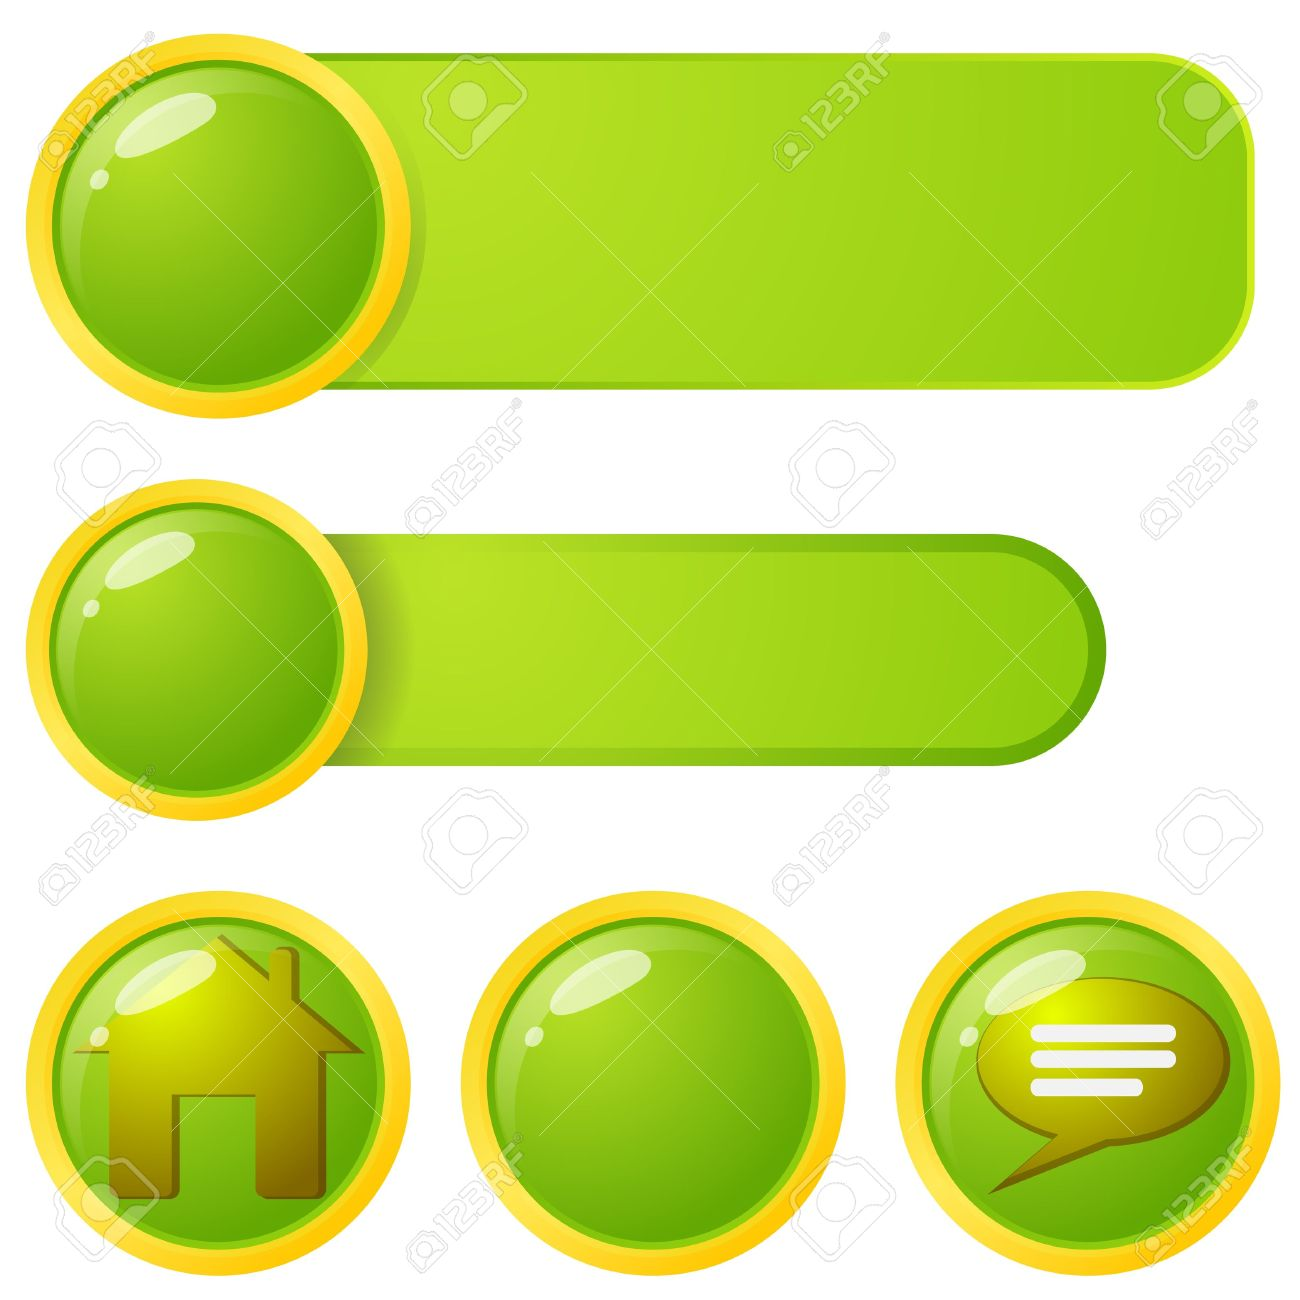 Green And Yellow Web Page Menu Elements. Royalty Free Cliparts.